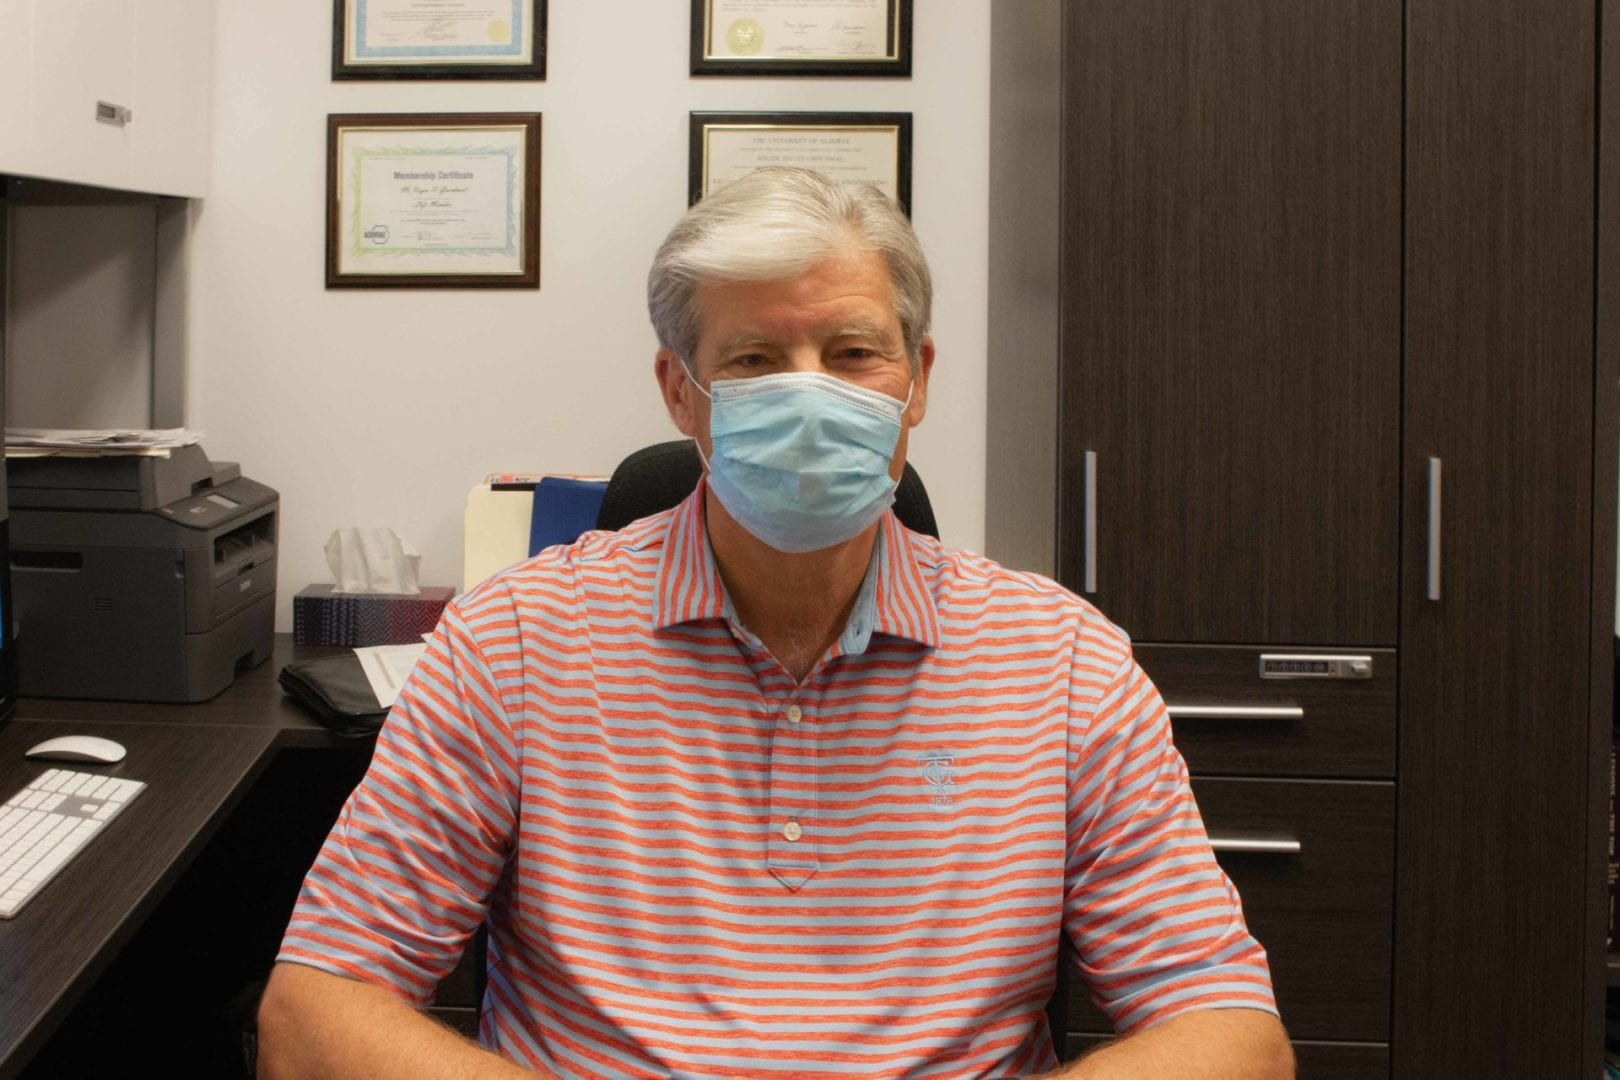 Roger Grochmal sitting in his office wearing a face mask